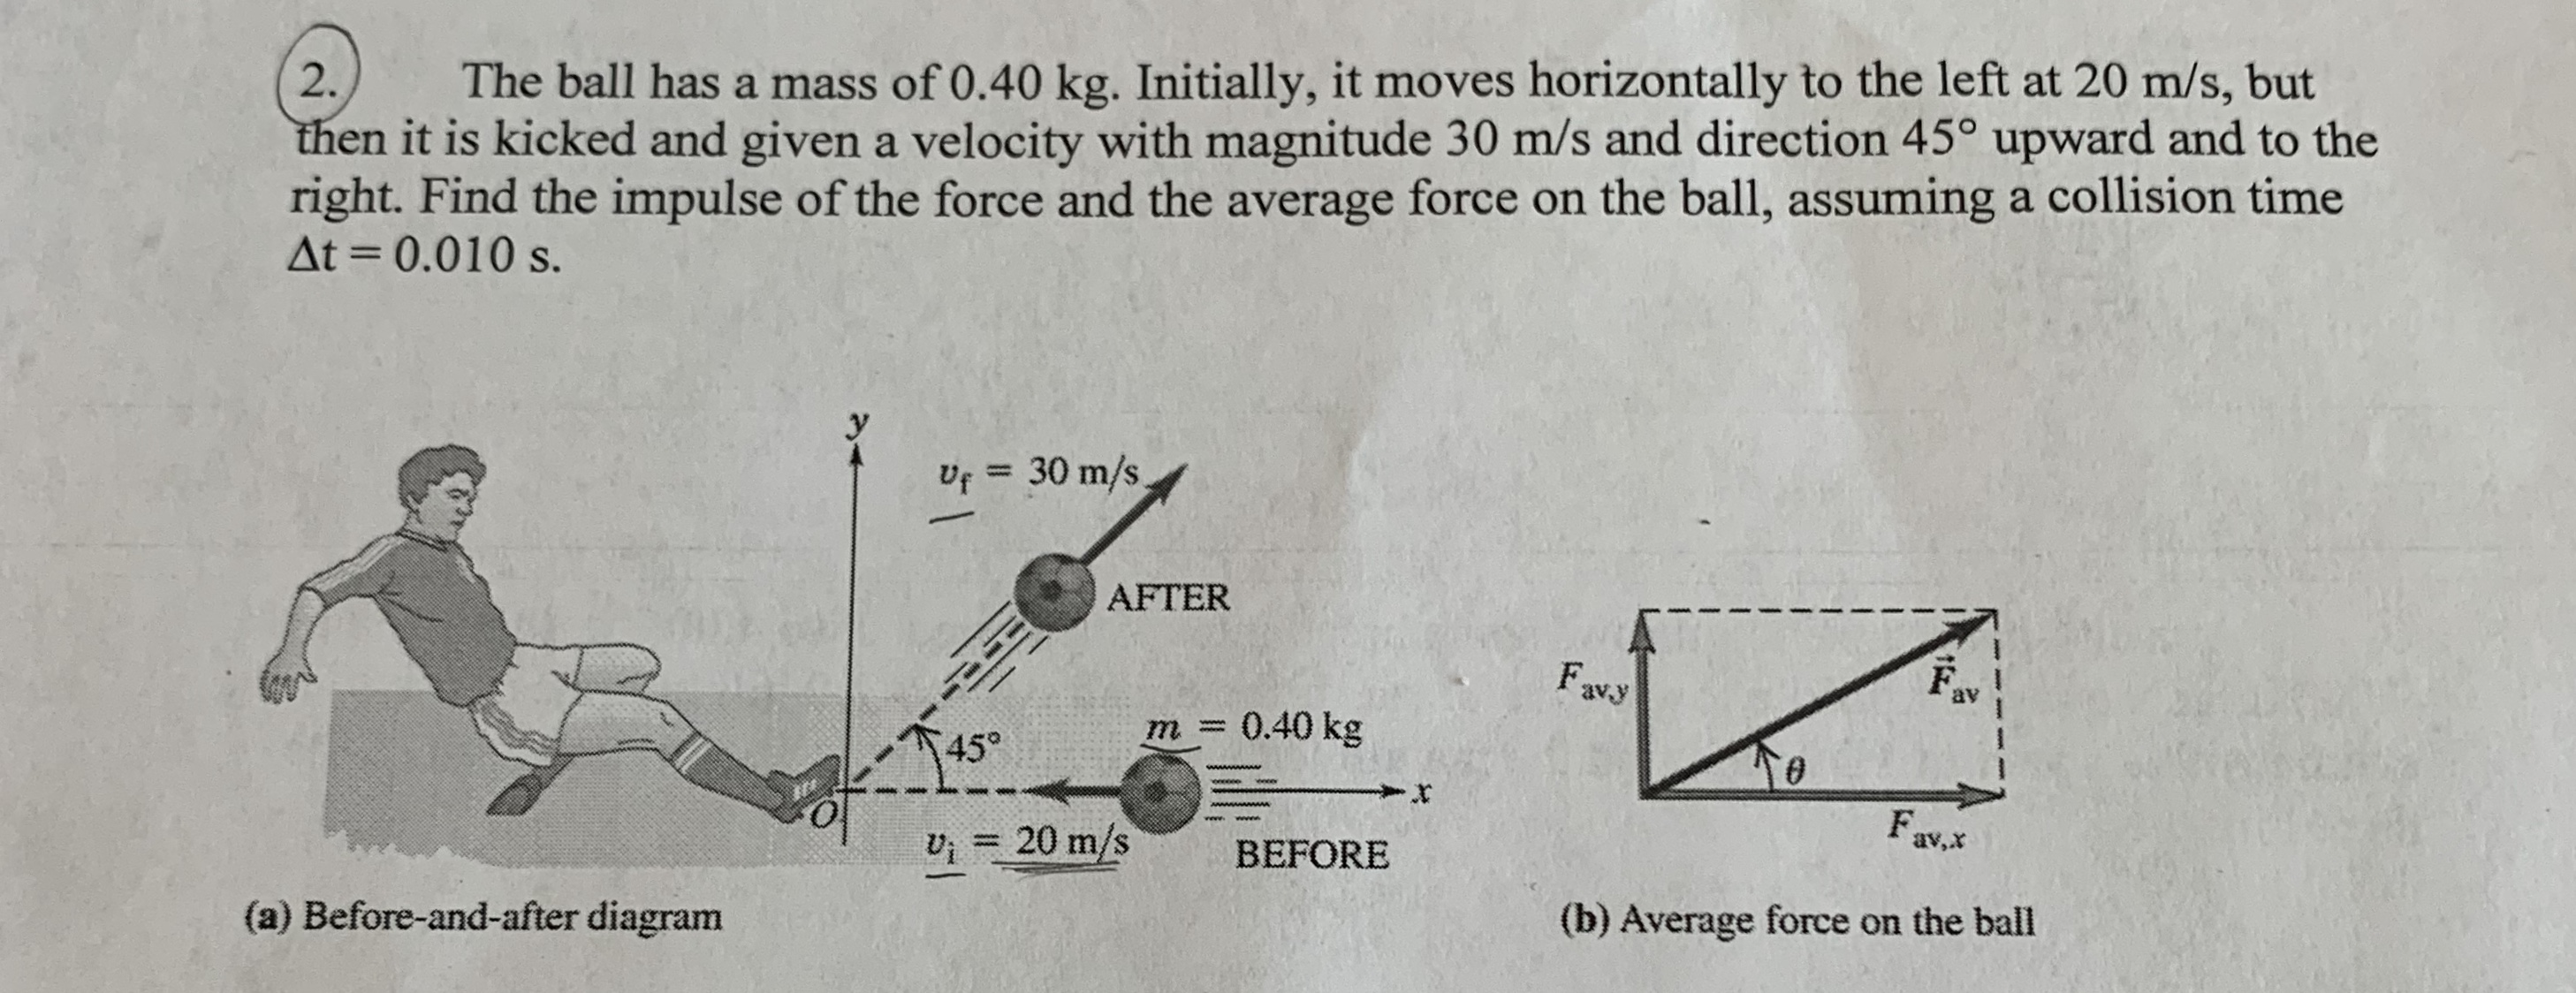 The ball has a mass of 0.40 kg. Initially, it moves horizontally to the left at 20 m/s, but 2. then it is kicked and given a velocity with magnitude 30 m/s and direction 45° upward and to the right. Find the impulse of the force and the average force on the ball, assuming a collision time At 0.010 s. Uf 30 m/s AFTER avy 0.40 kg m. 45° wwwww F. Ui 20 m/s av,x BEFORE (a) Before-and-after diagram (b) Average force on the ball